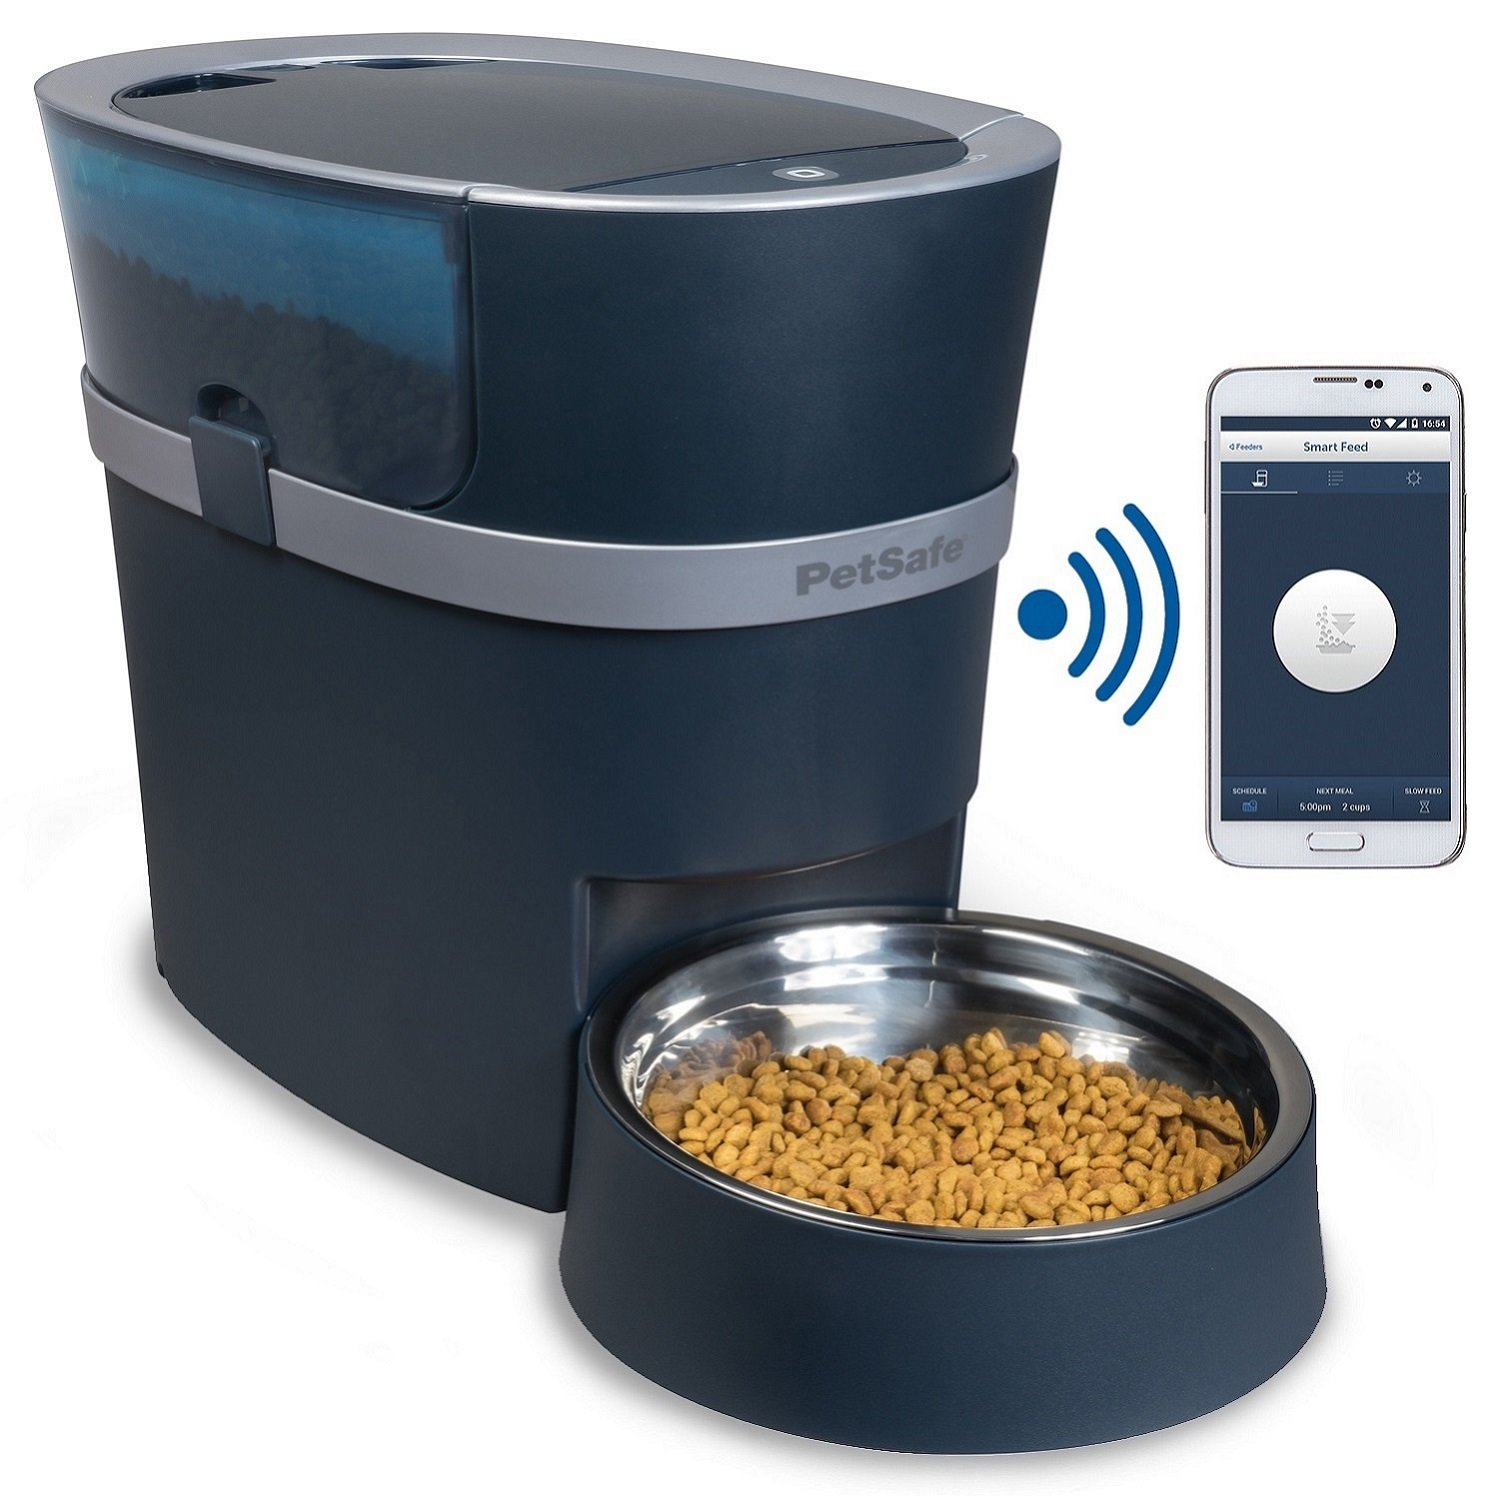 PetSafe Smart Feed Automatic Dog and Cat Feeder, Smartphone, 24-Cups, Wi-Fi Enabled App for iPhone and Android, Award Winning Pet Feeder